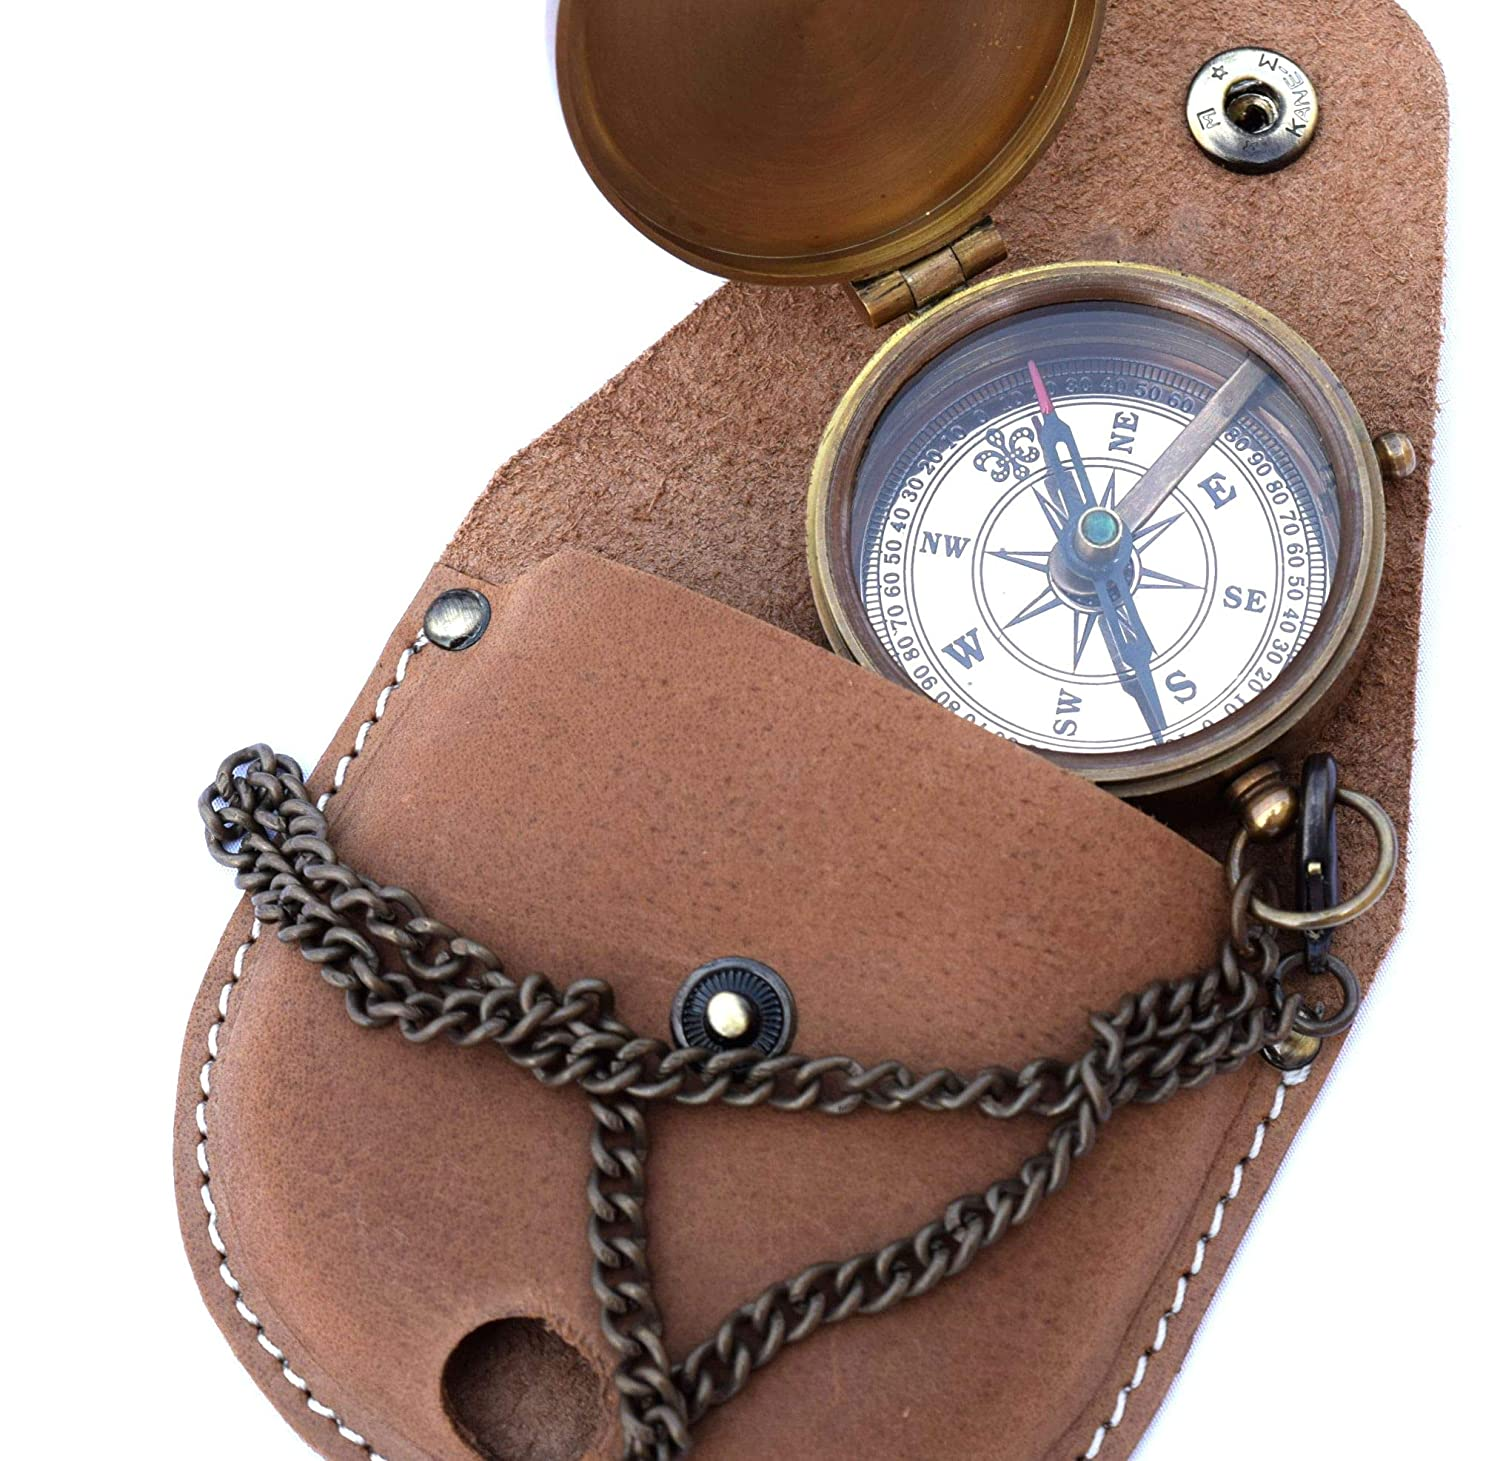 Boy Scouts Gifts MU018 Neovivid Brass Compass Engraved with Thoreaus Go Confidently Quote and Stamped Leather Case